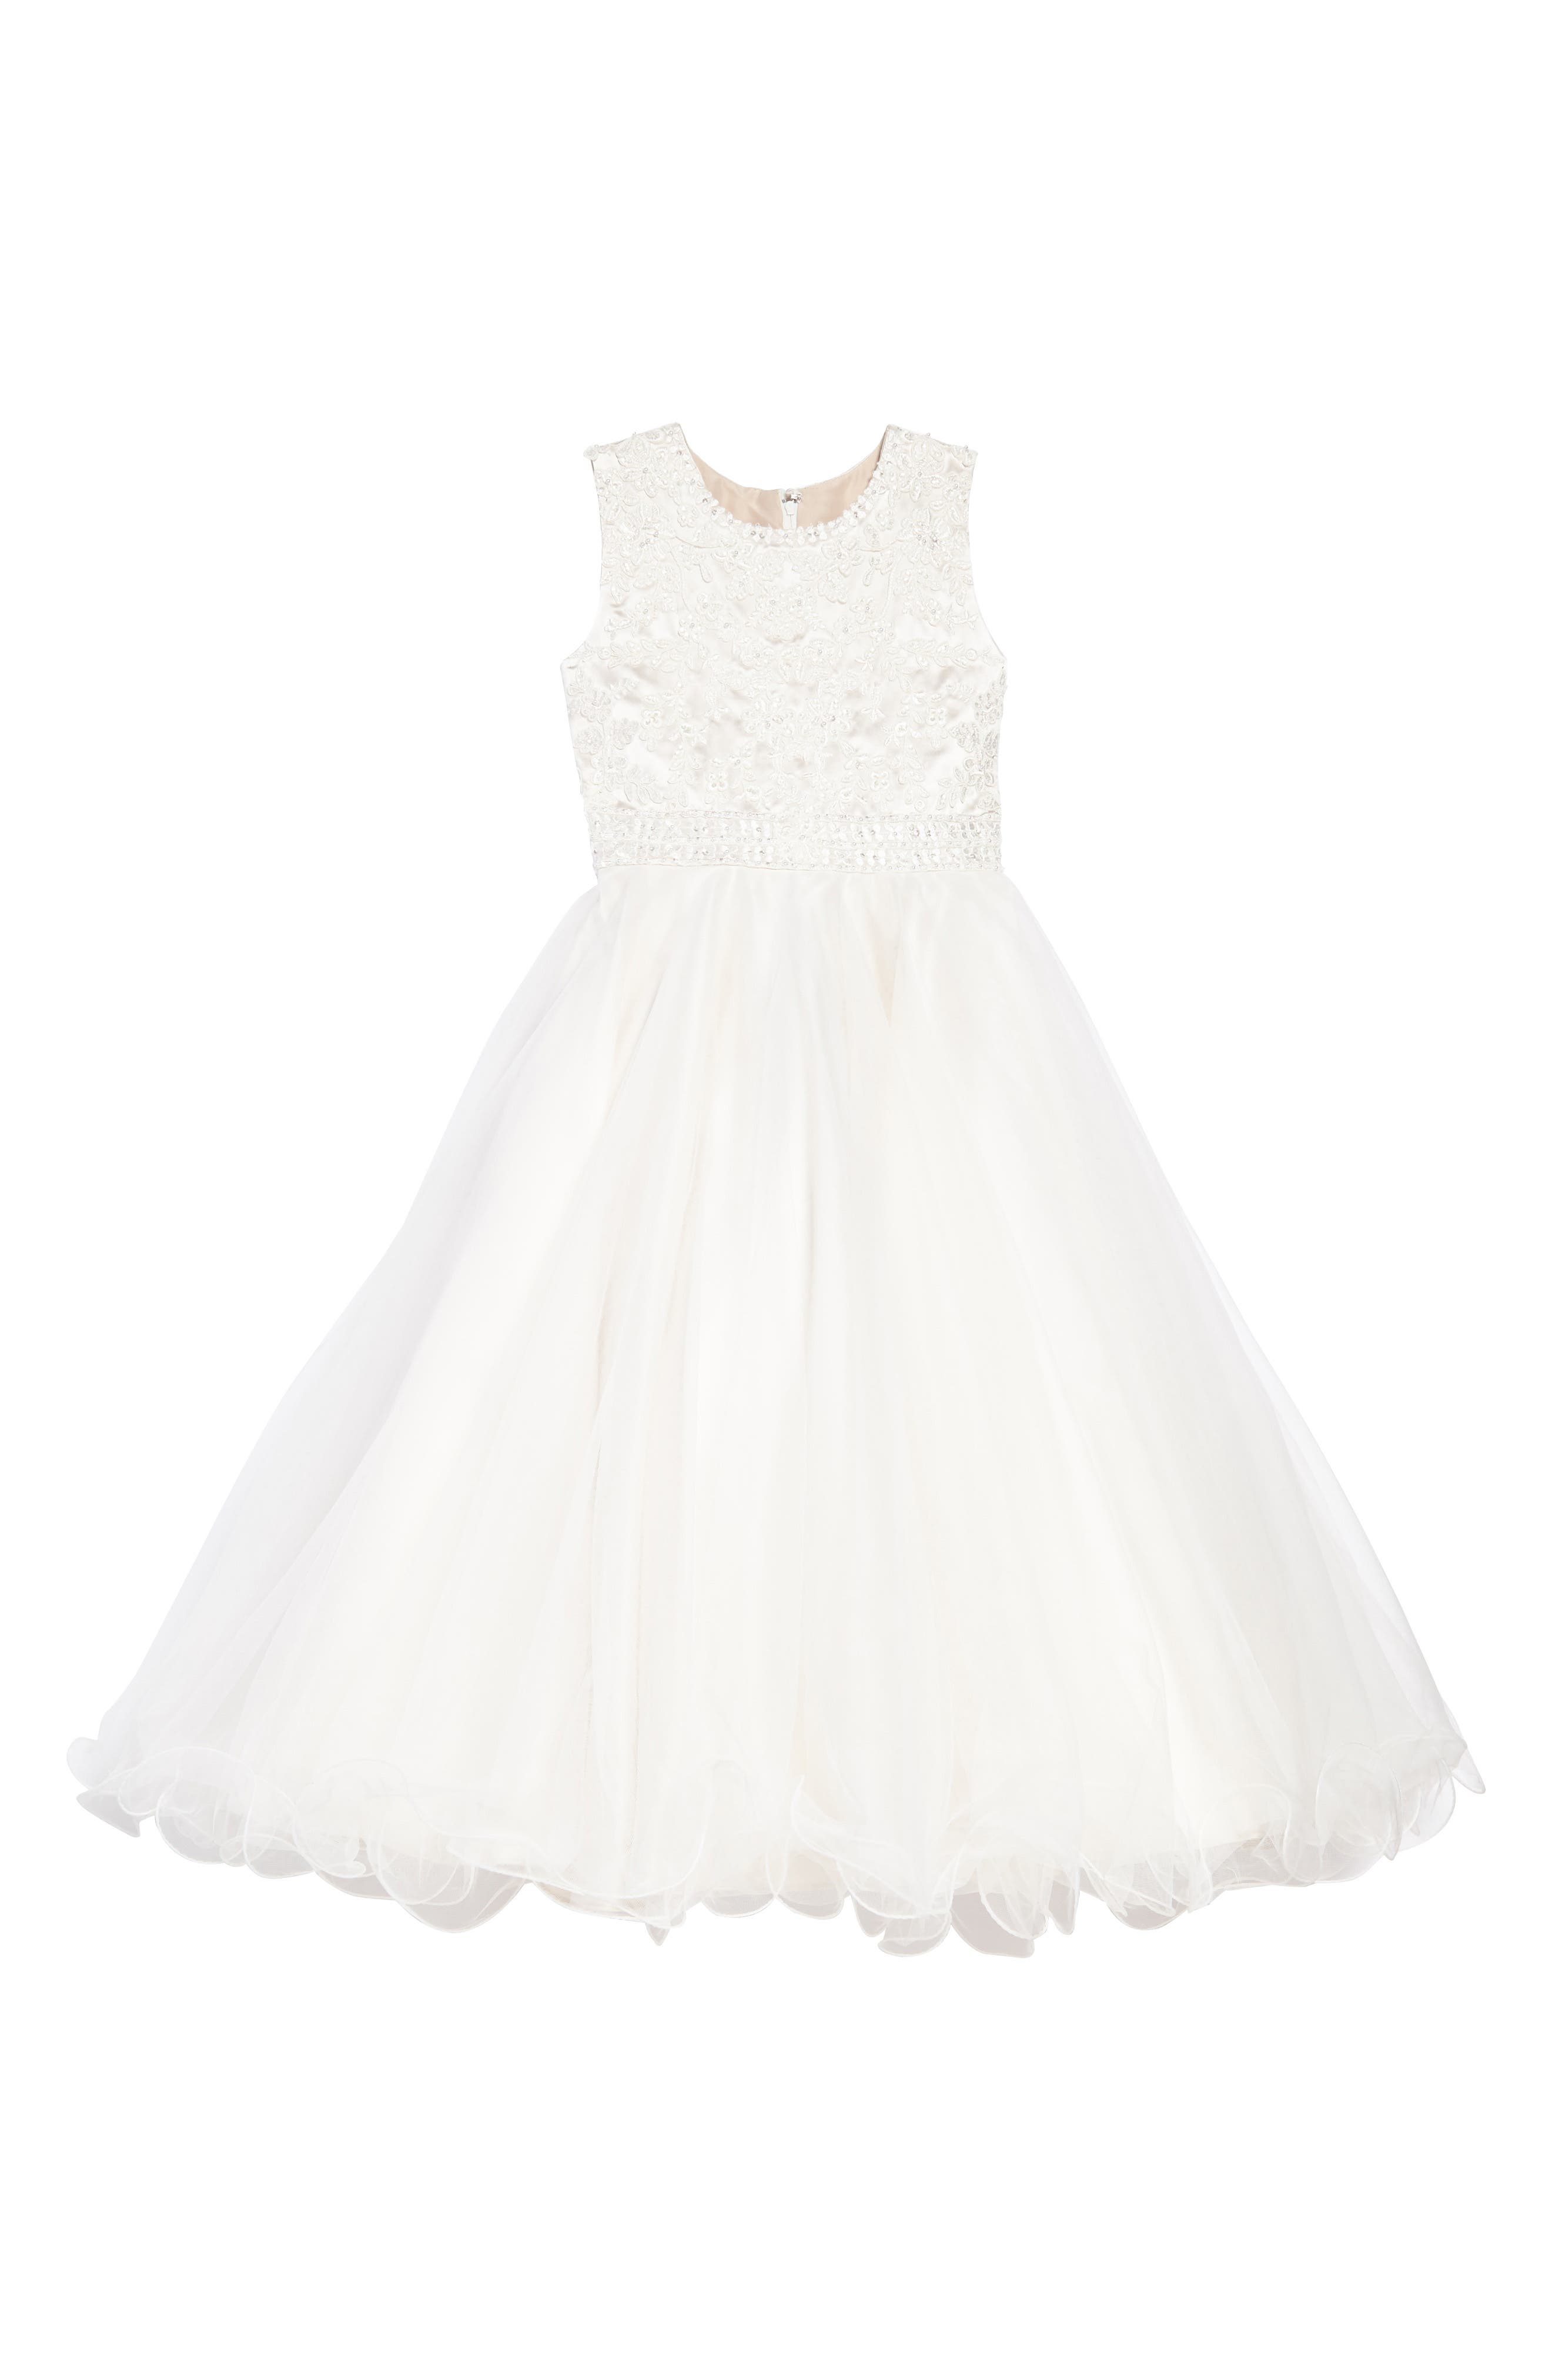 Lace & Tulle Dress,                         Main,                         color, Ivory/ Gardenia